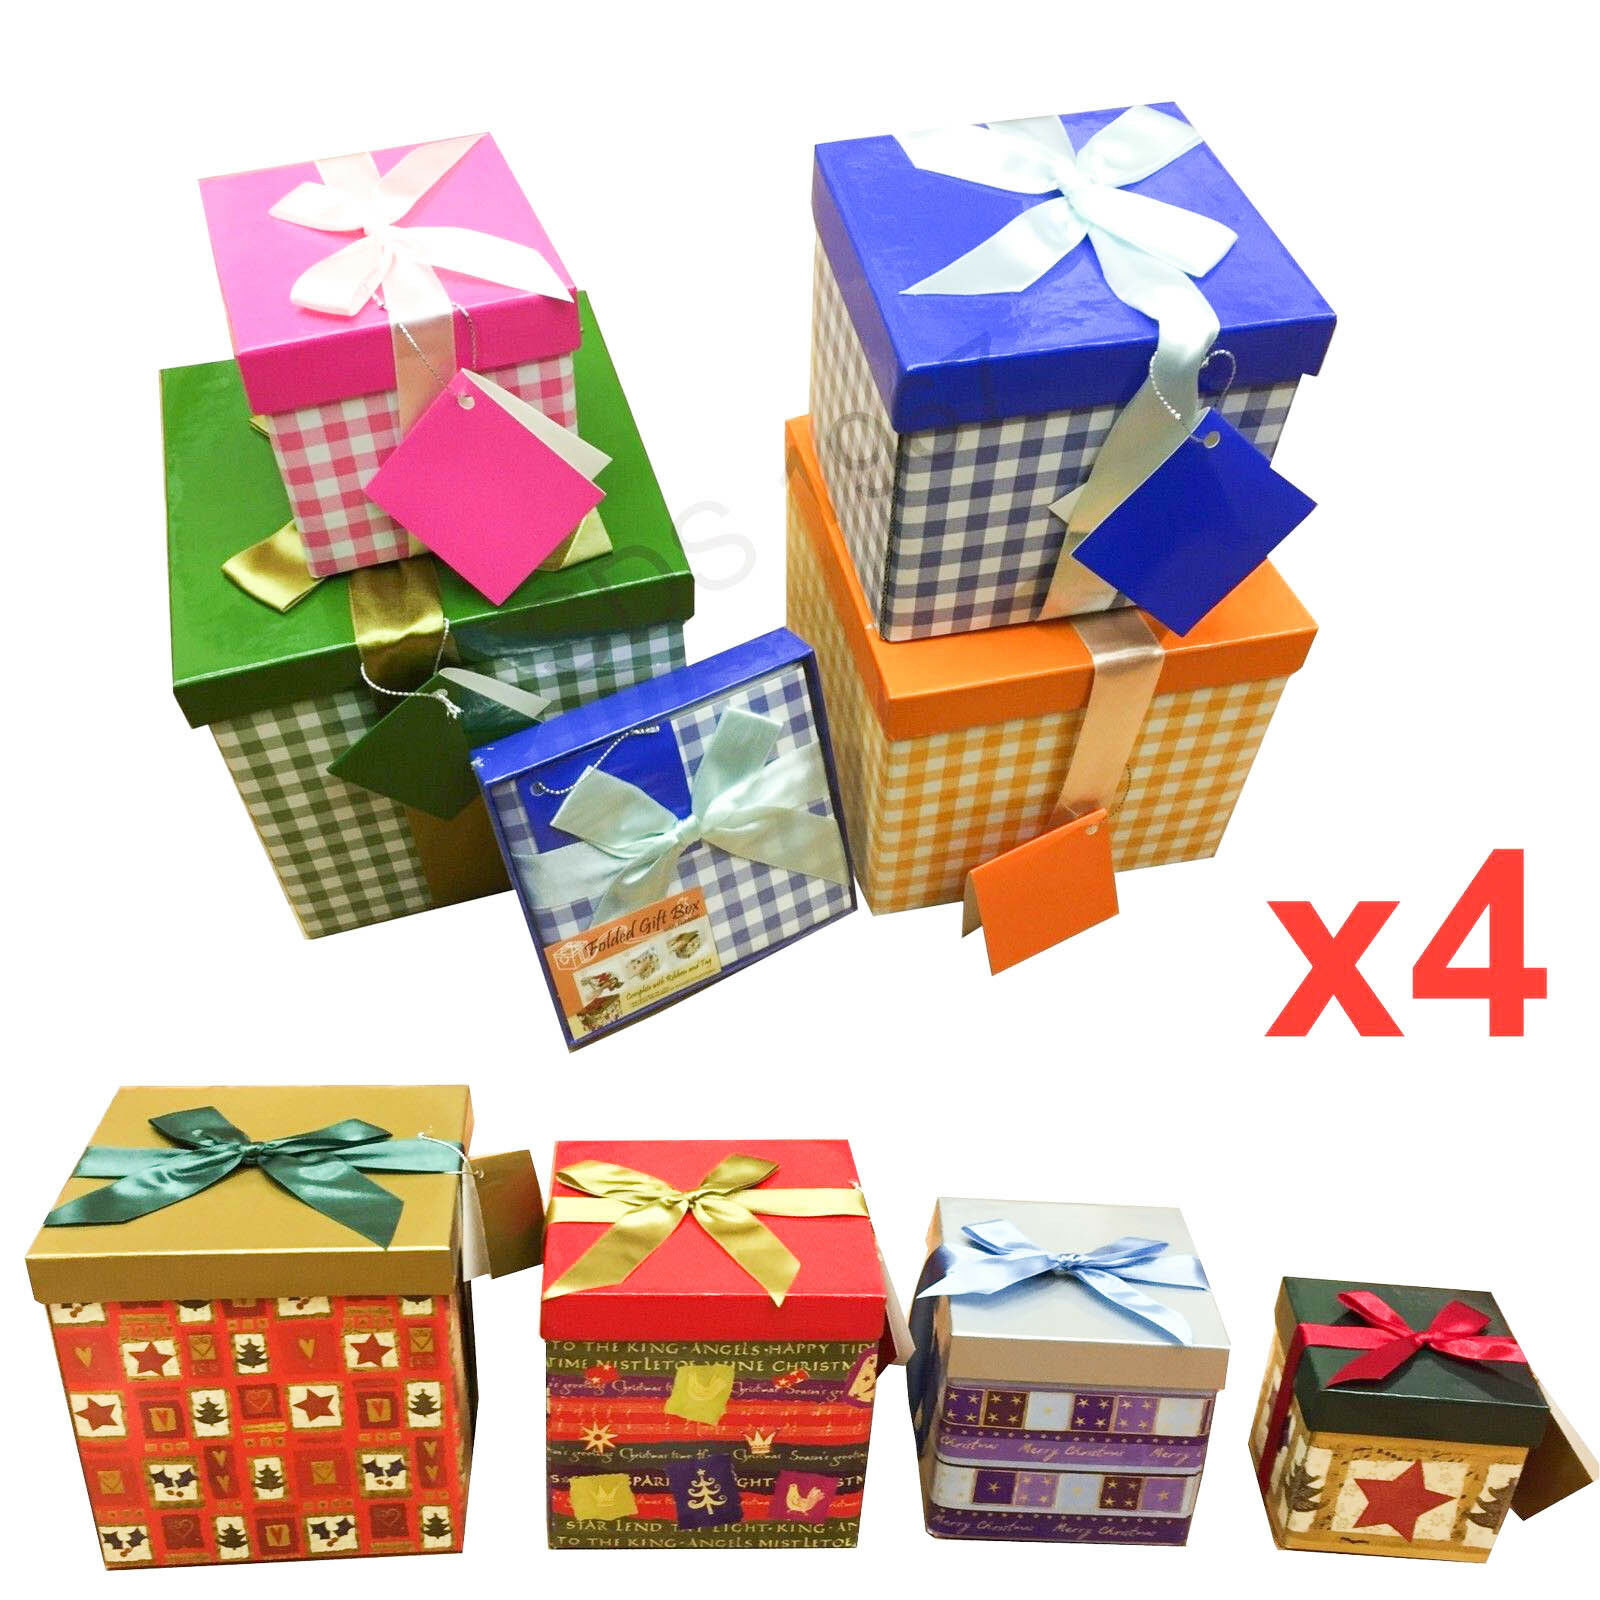 4x high quality gift boxes bag folded necklace bracelet christmas gift wholesale - Christmas Gift Boxes Wholesale